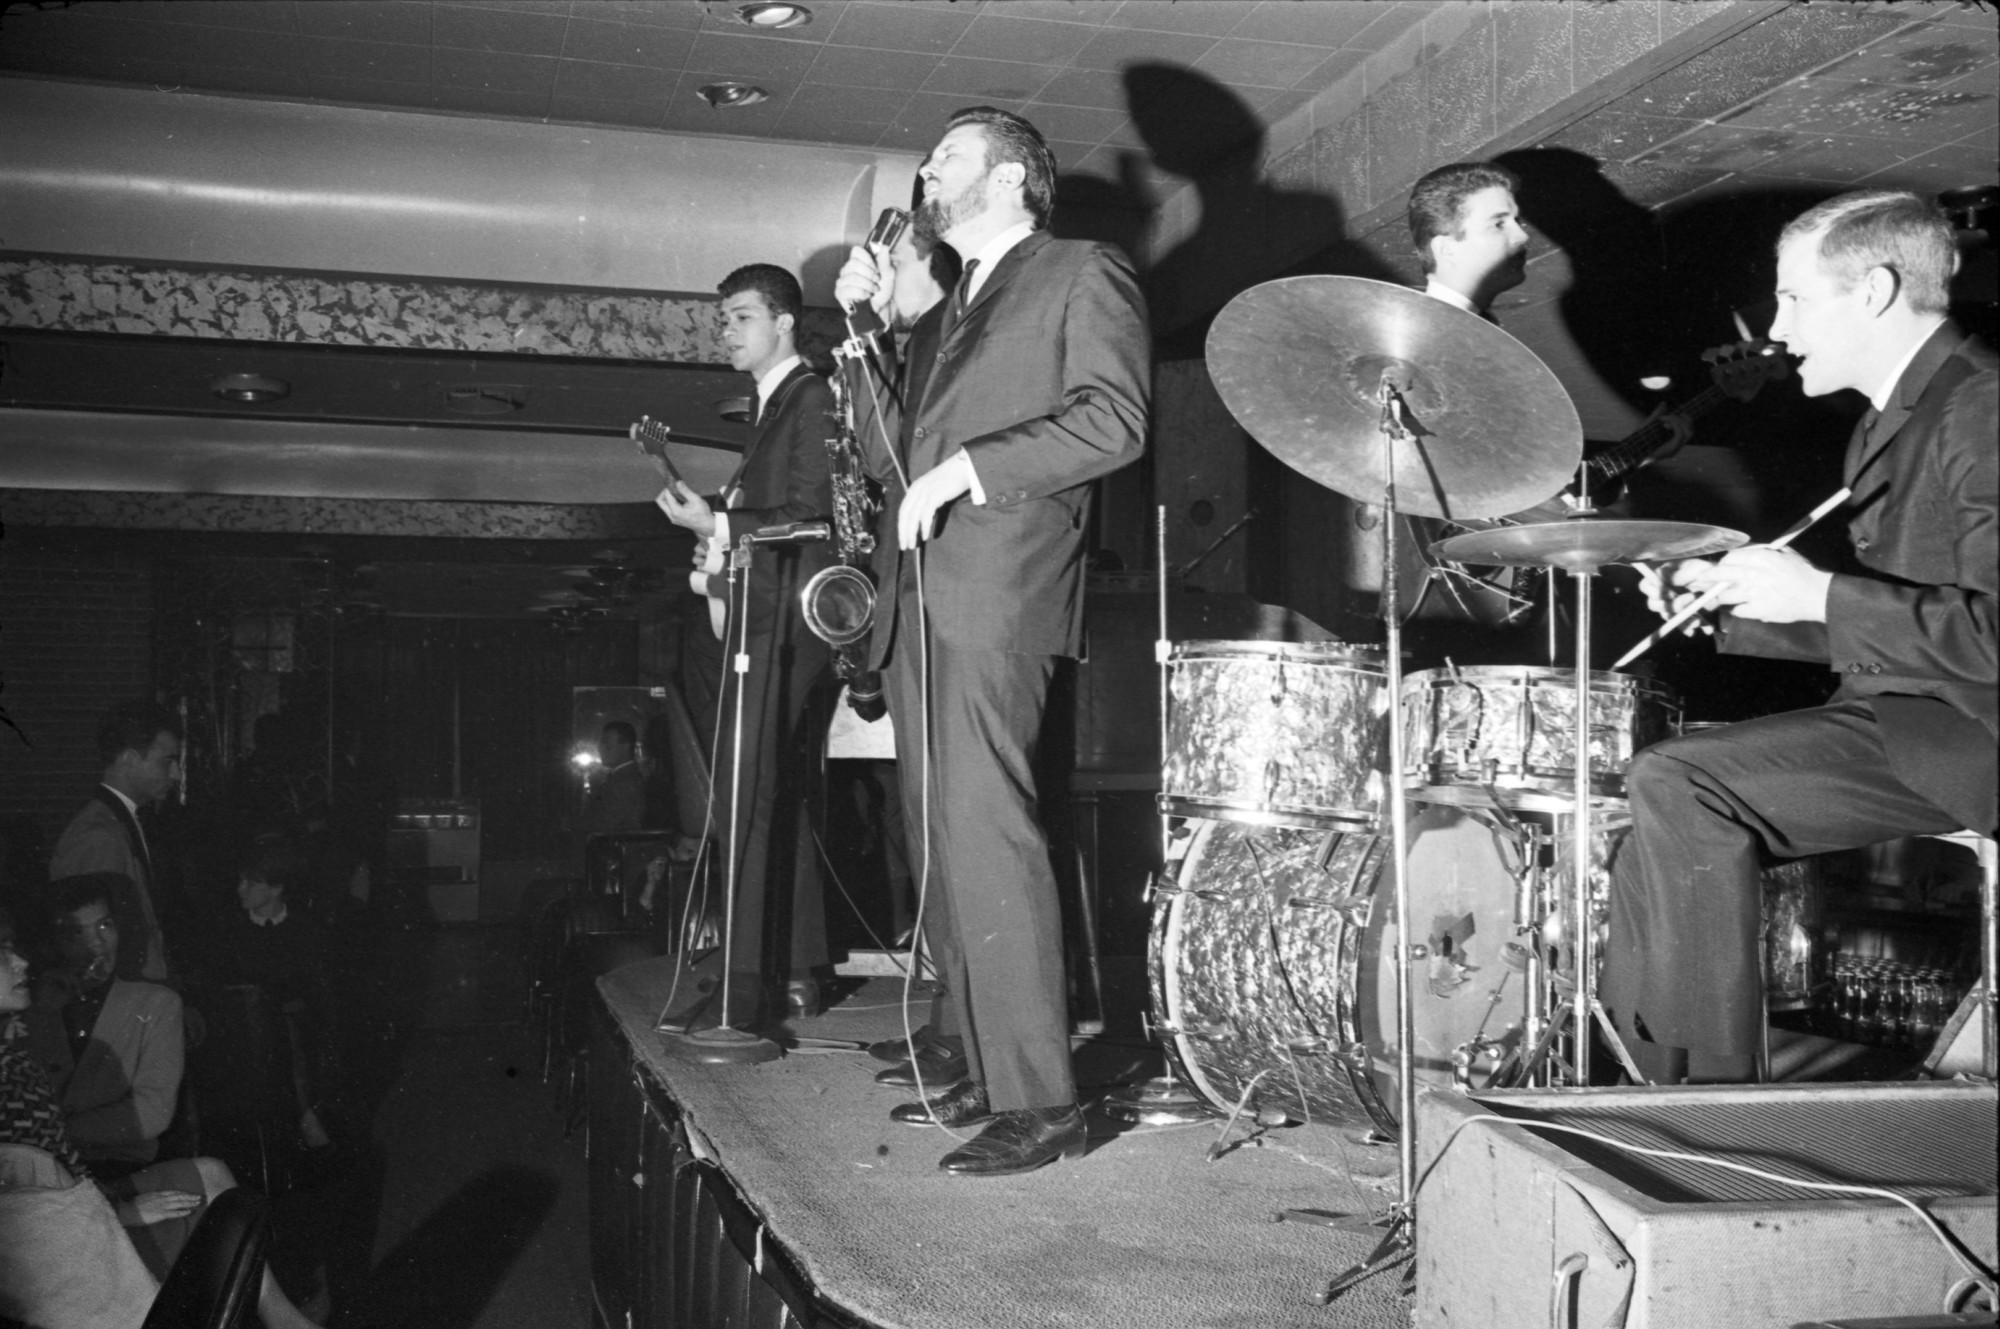 Five men on a stage with instruments wearing suits. Spectators can be seen in the lower left hand corner of the image.